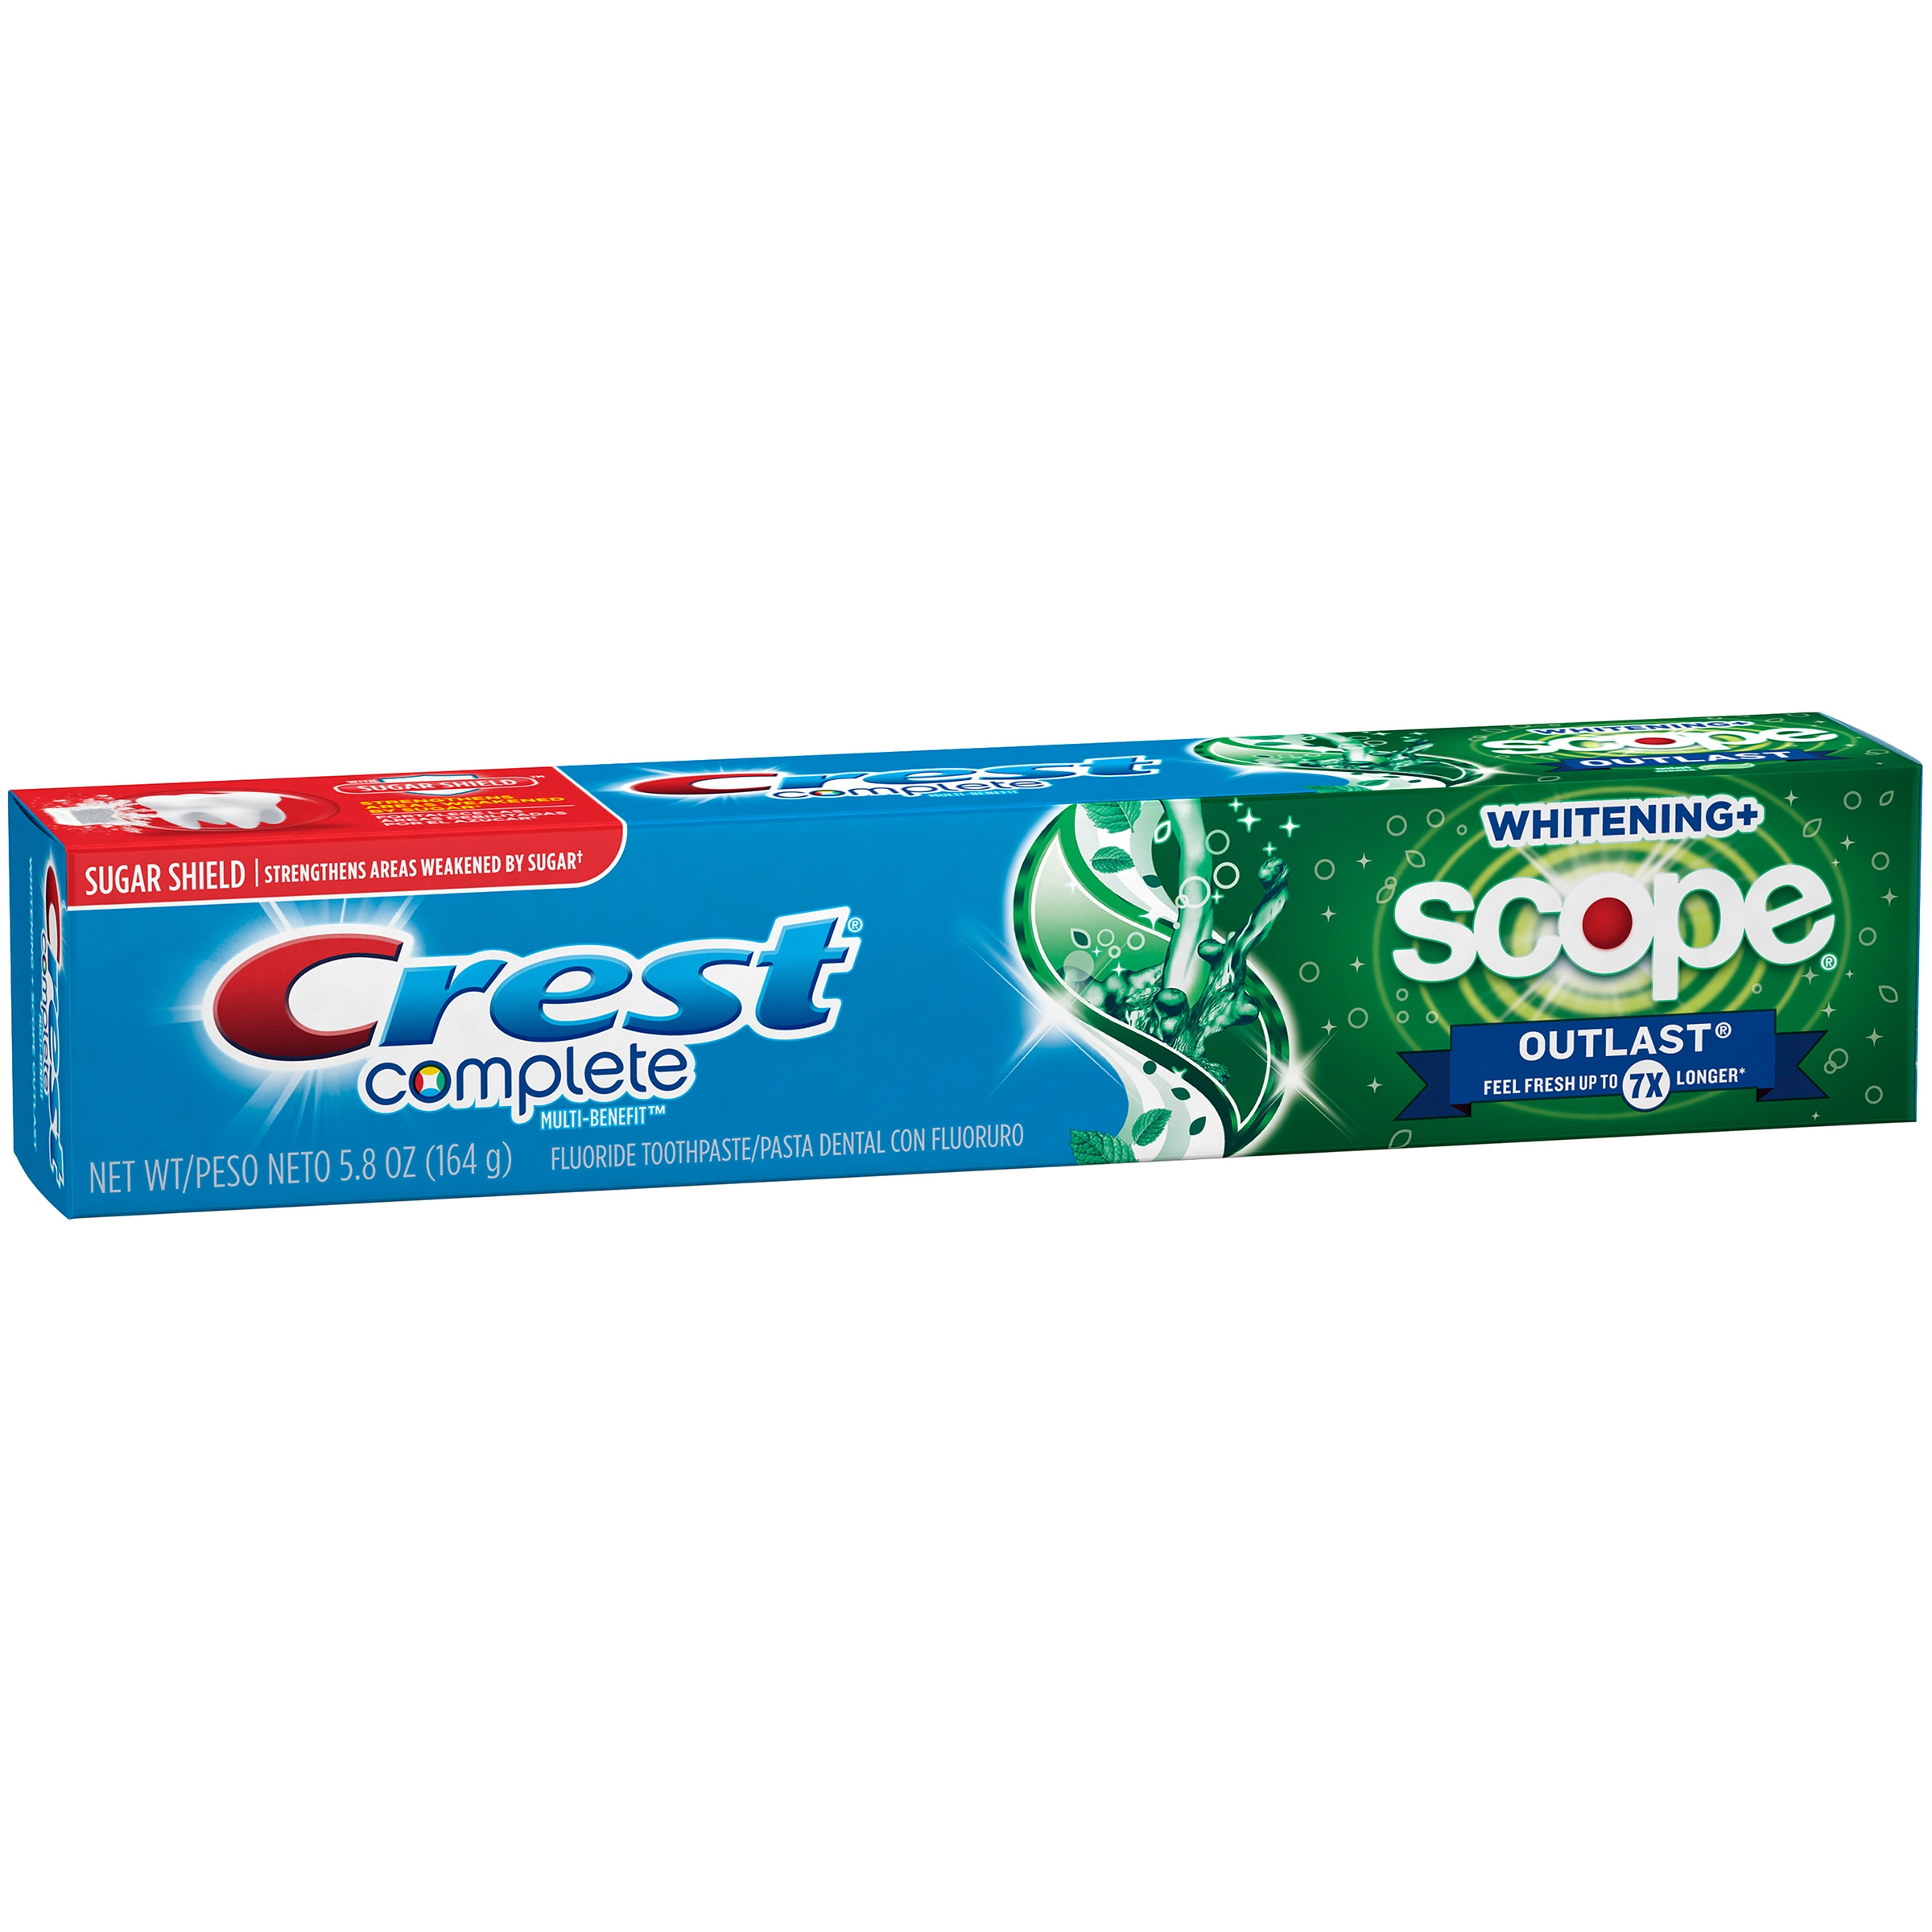 Crest Complete Whitening + Scope Outlast Mint Toothpaste, 5.8 Oz